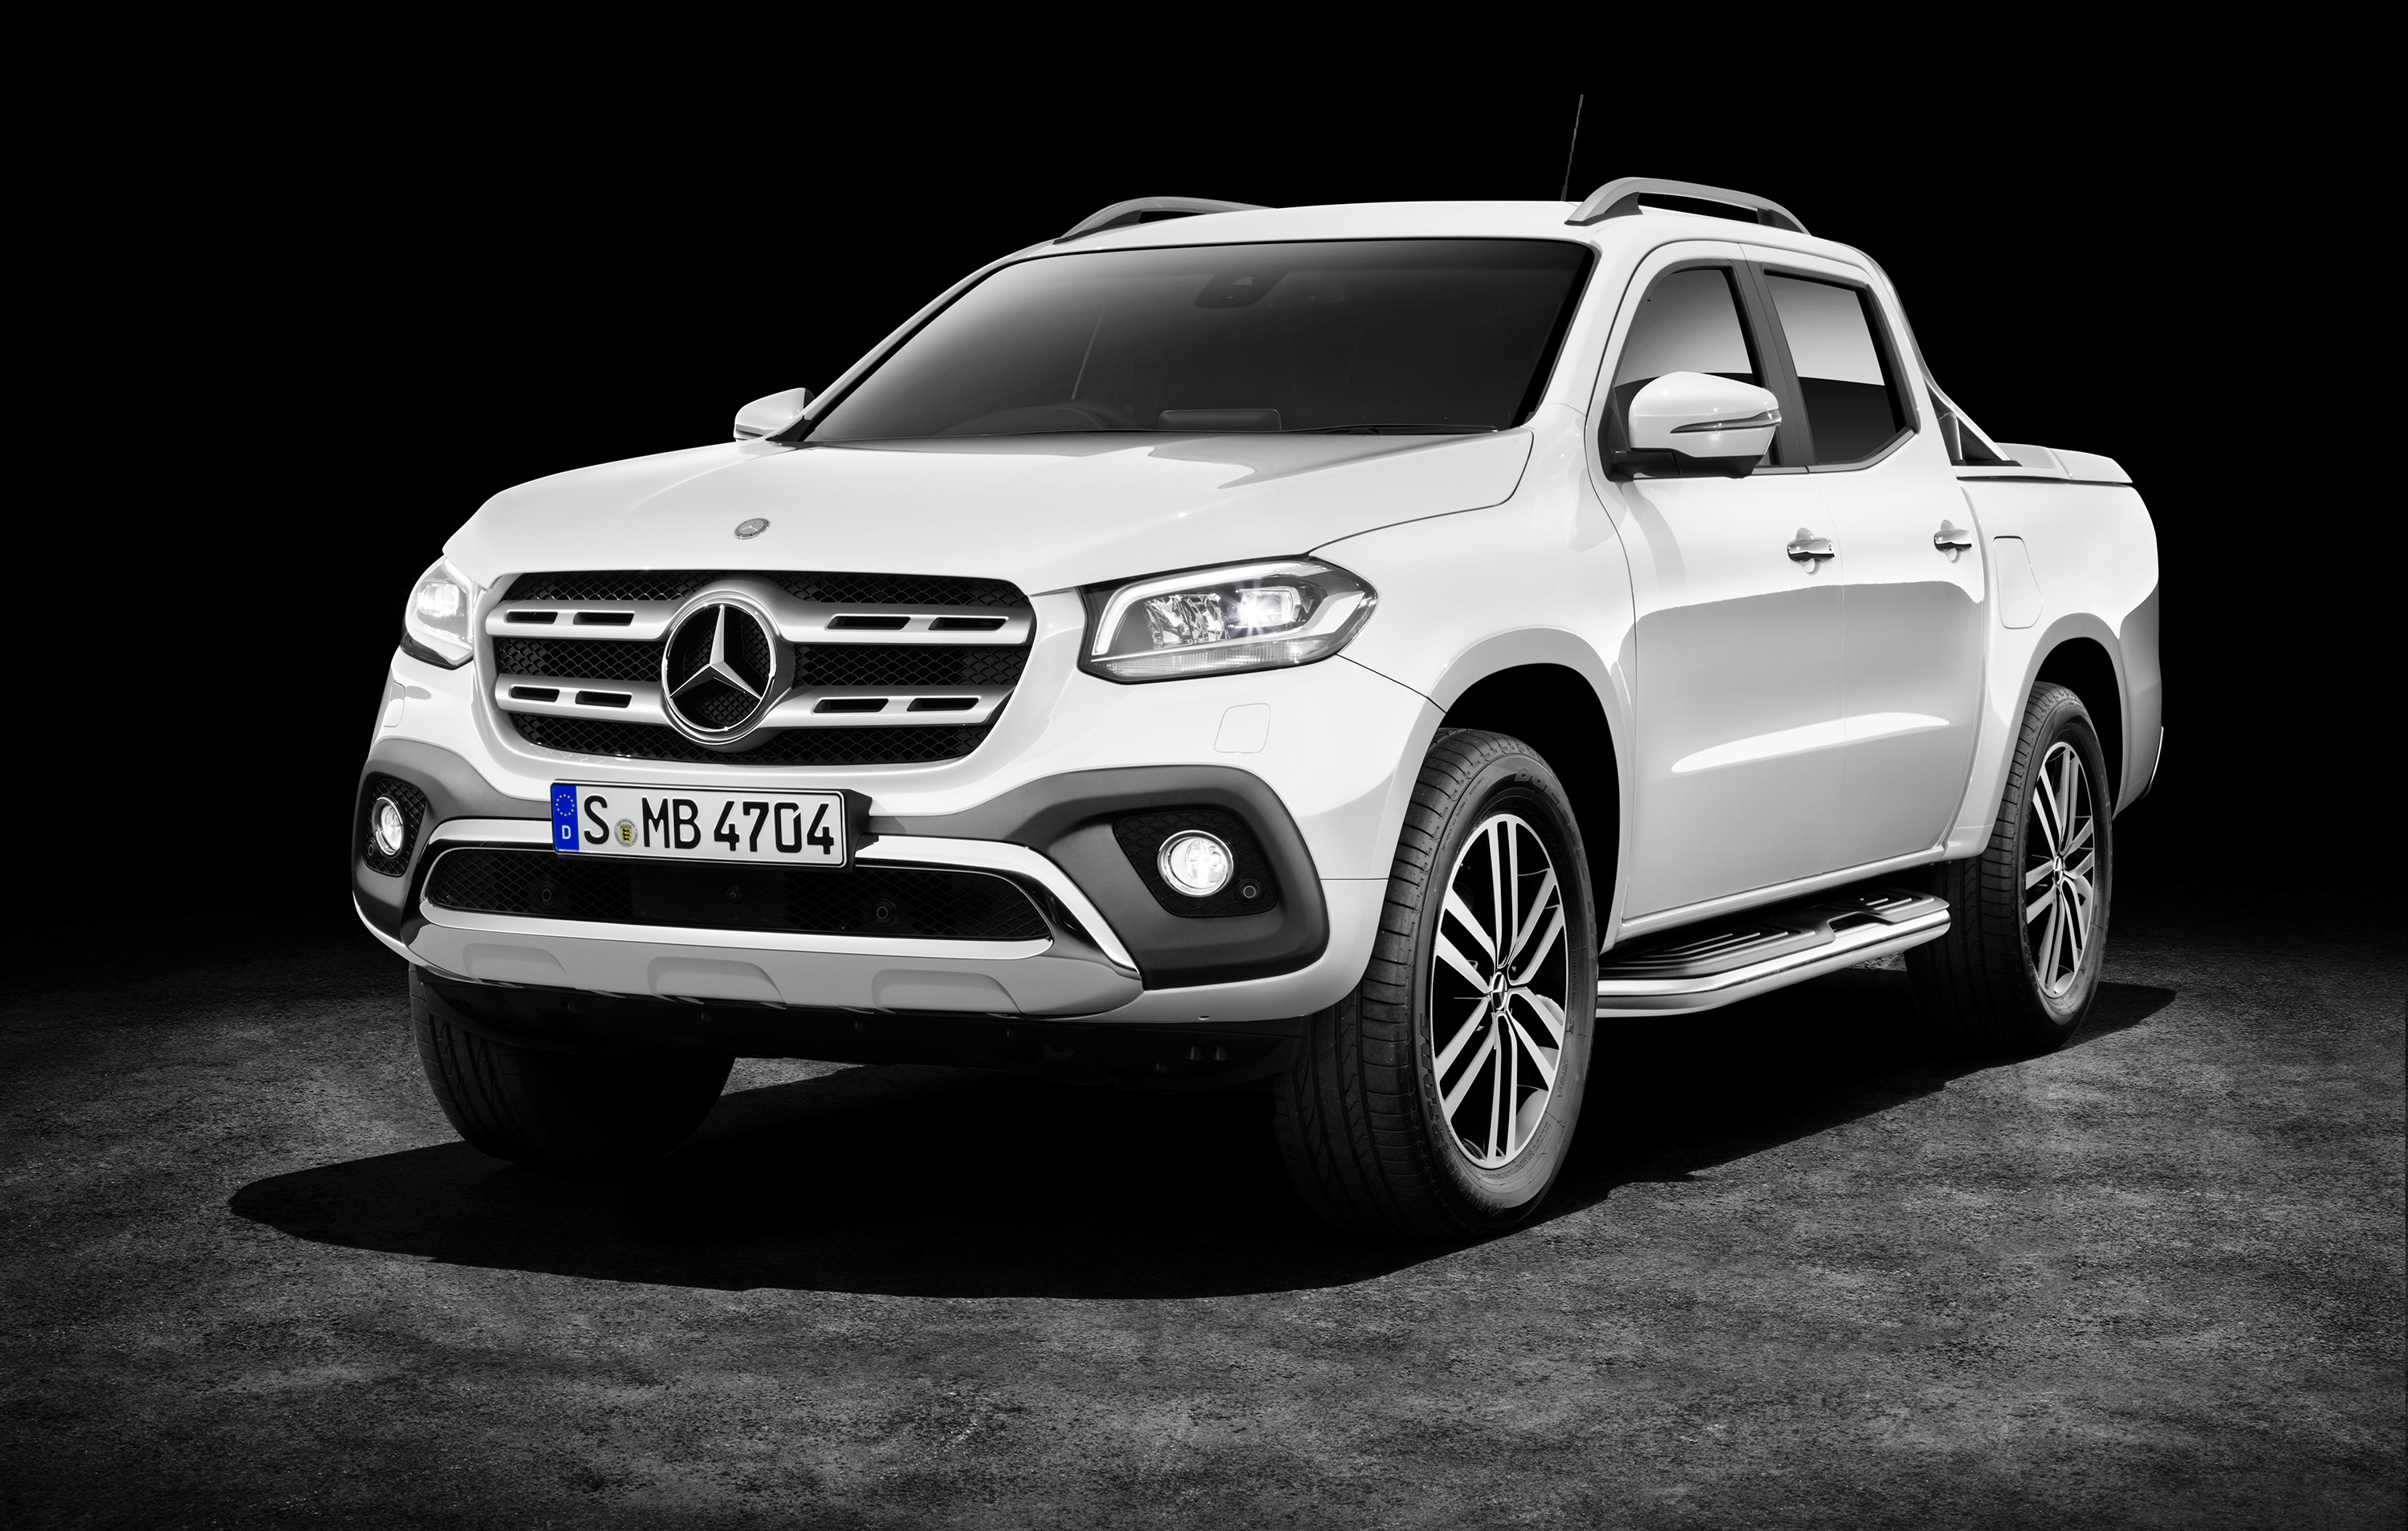 2018 mercedes benz x class ute australian details emerge photos 1 of 9. Black Bedroom Furniture Sets. Home Design Ideas